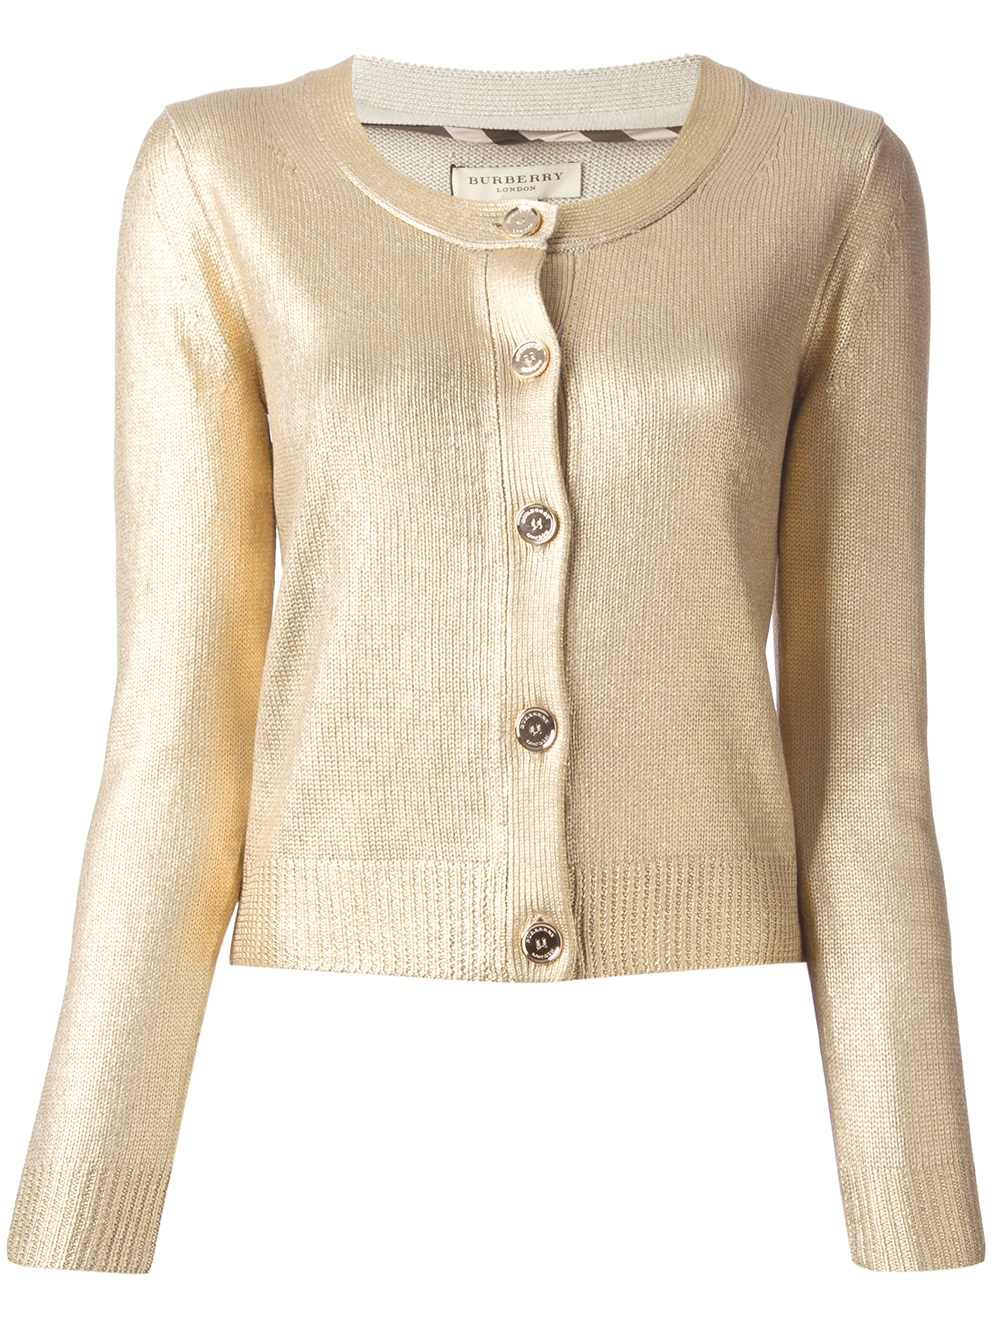 gold cardigan sweater - 28 images - alberto makali open stitch ...